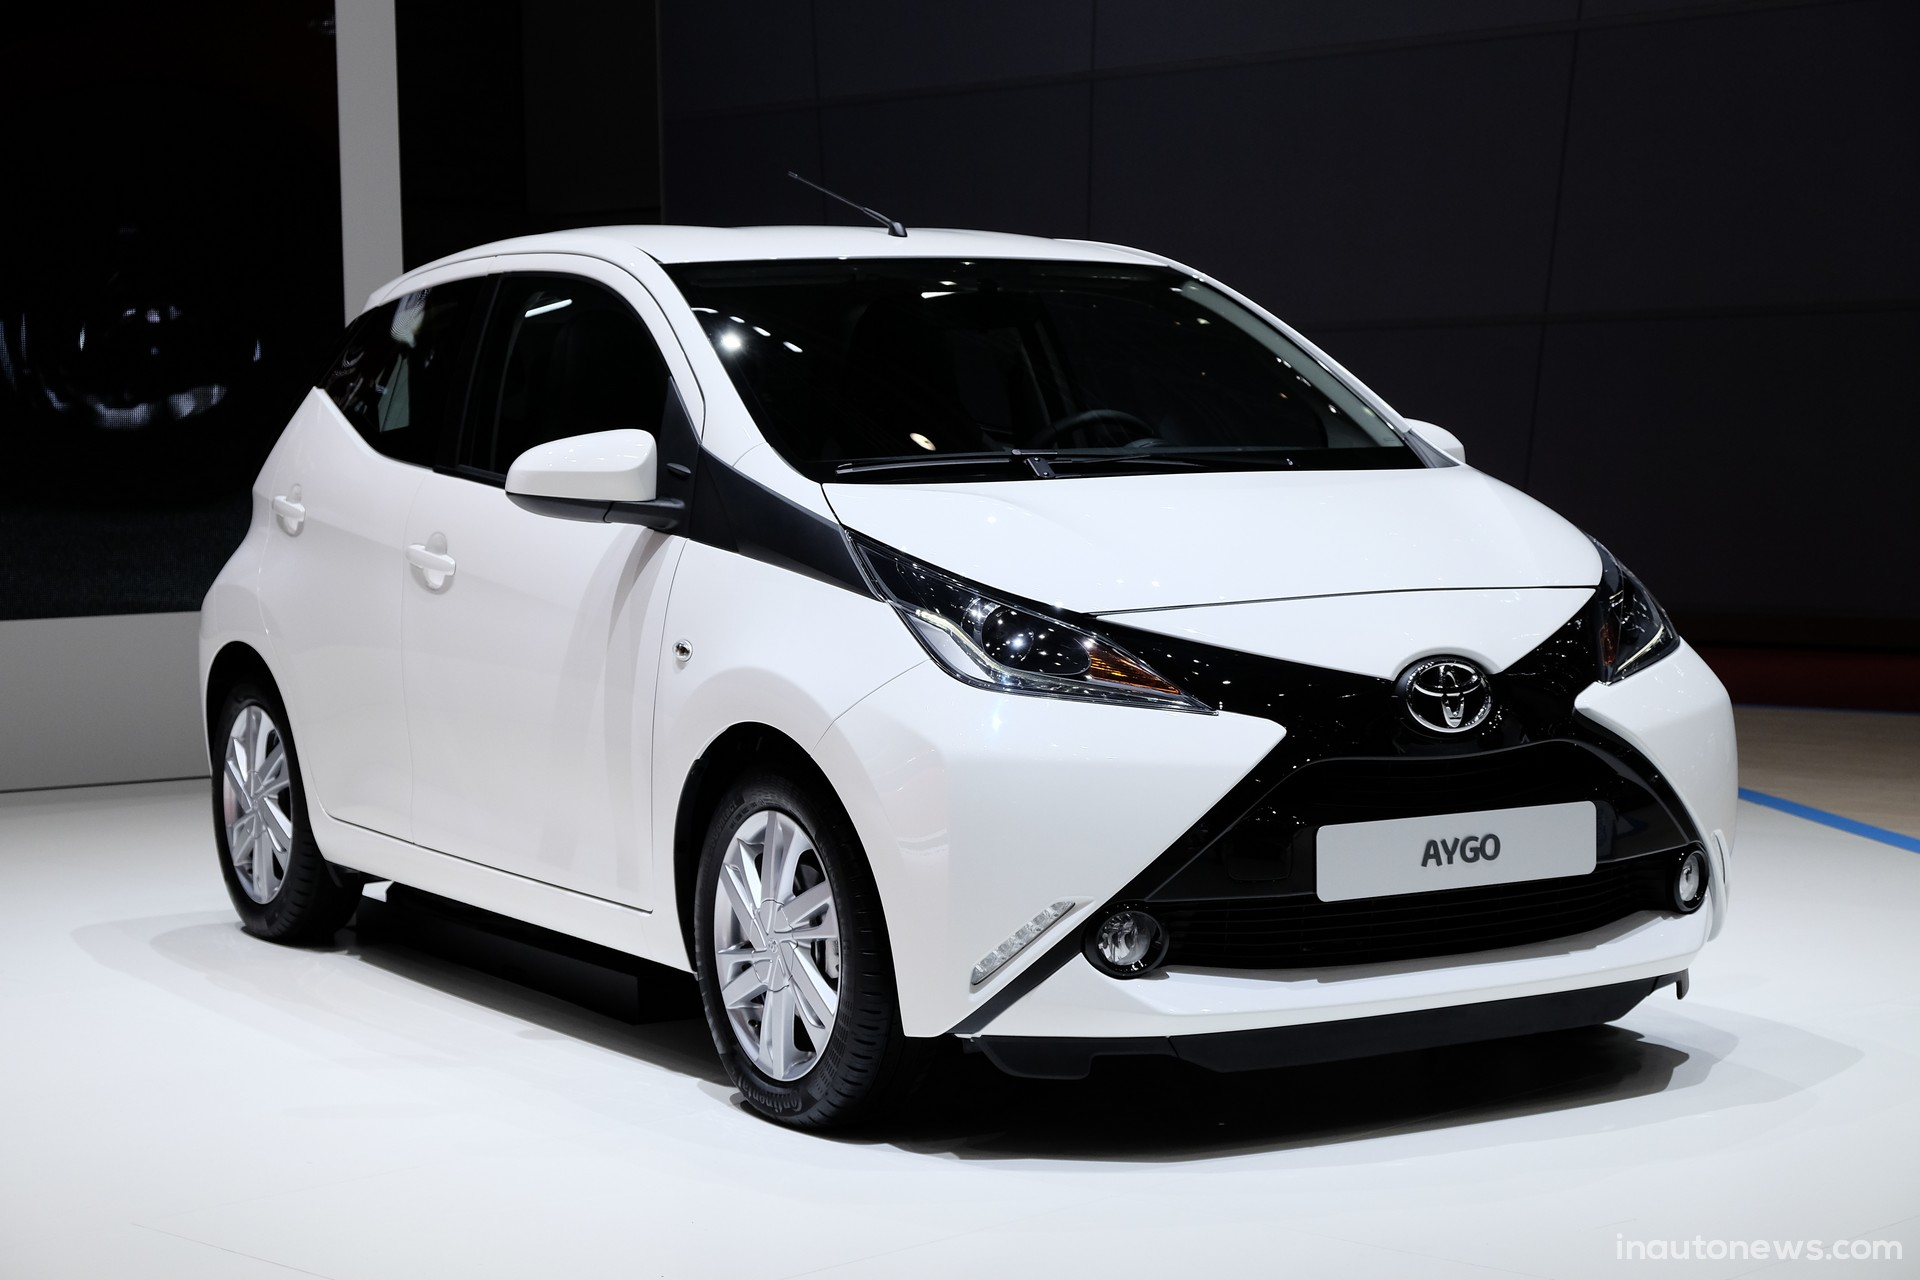 2014 toyota aygo pictures information and specs auto. Black Bedroom Furniture Sets. Home Design Ideas